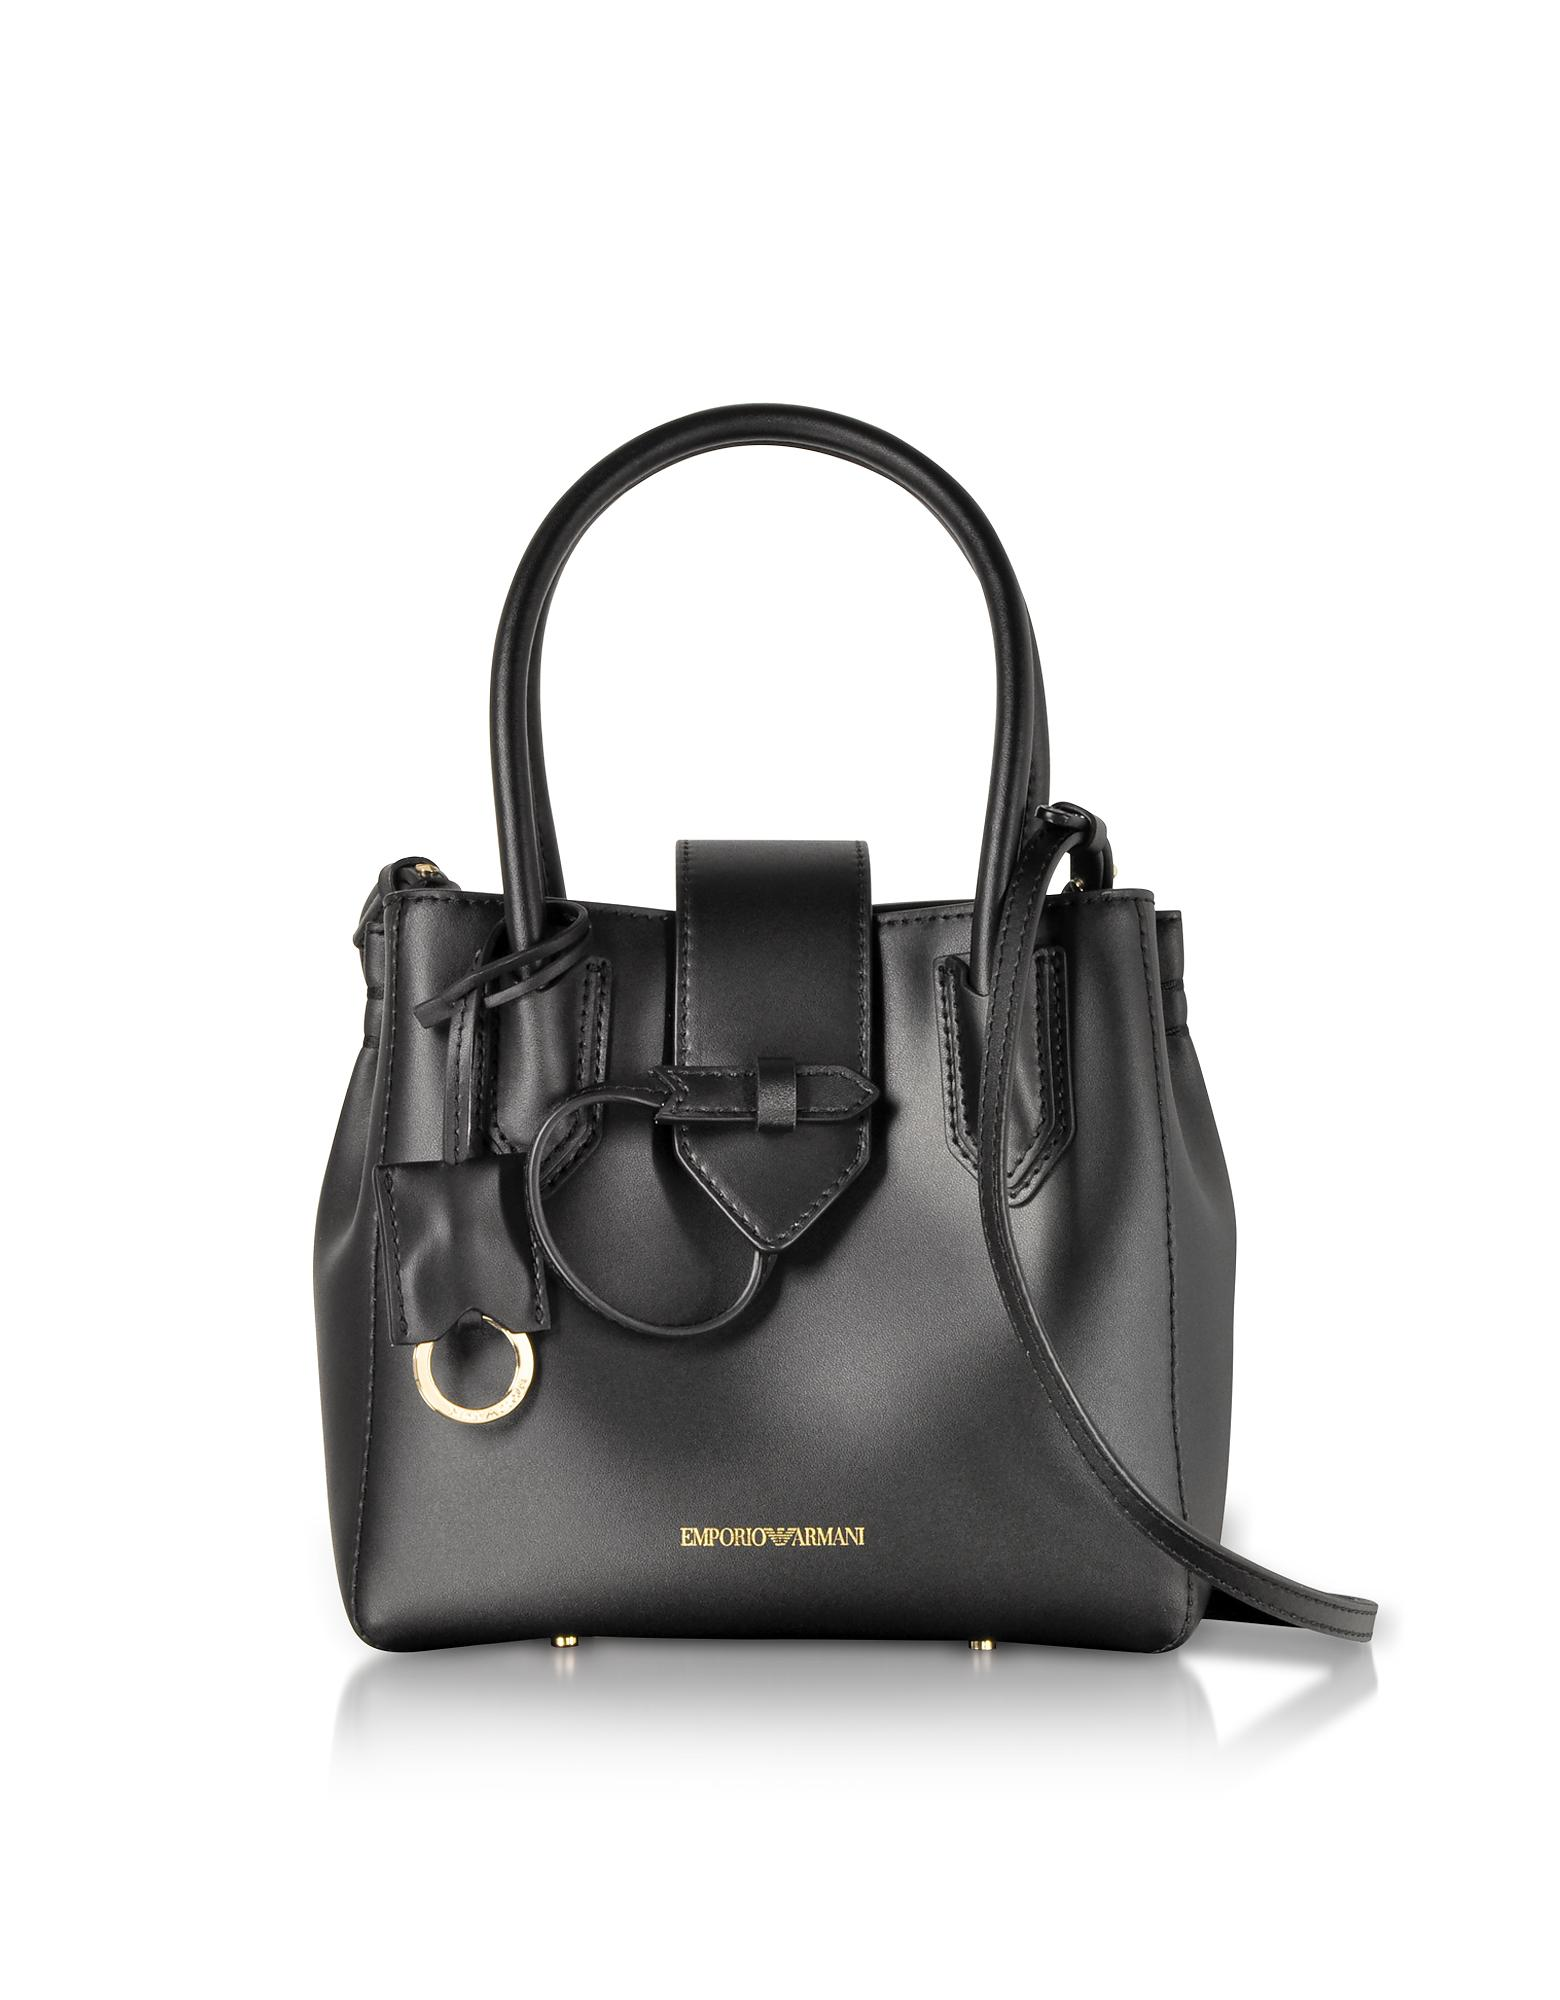 a41049199521 Lyst - Emporio Armani Genuine Leather Satchel Bag in Black